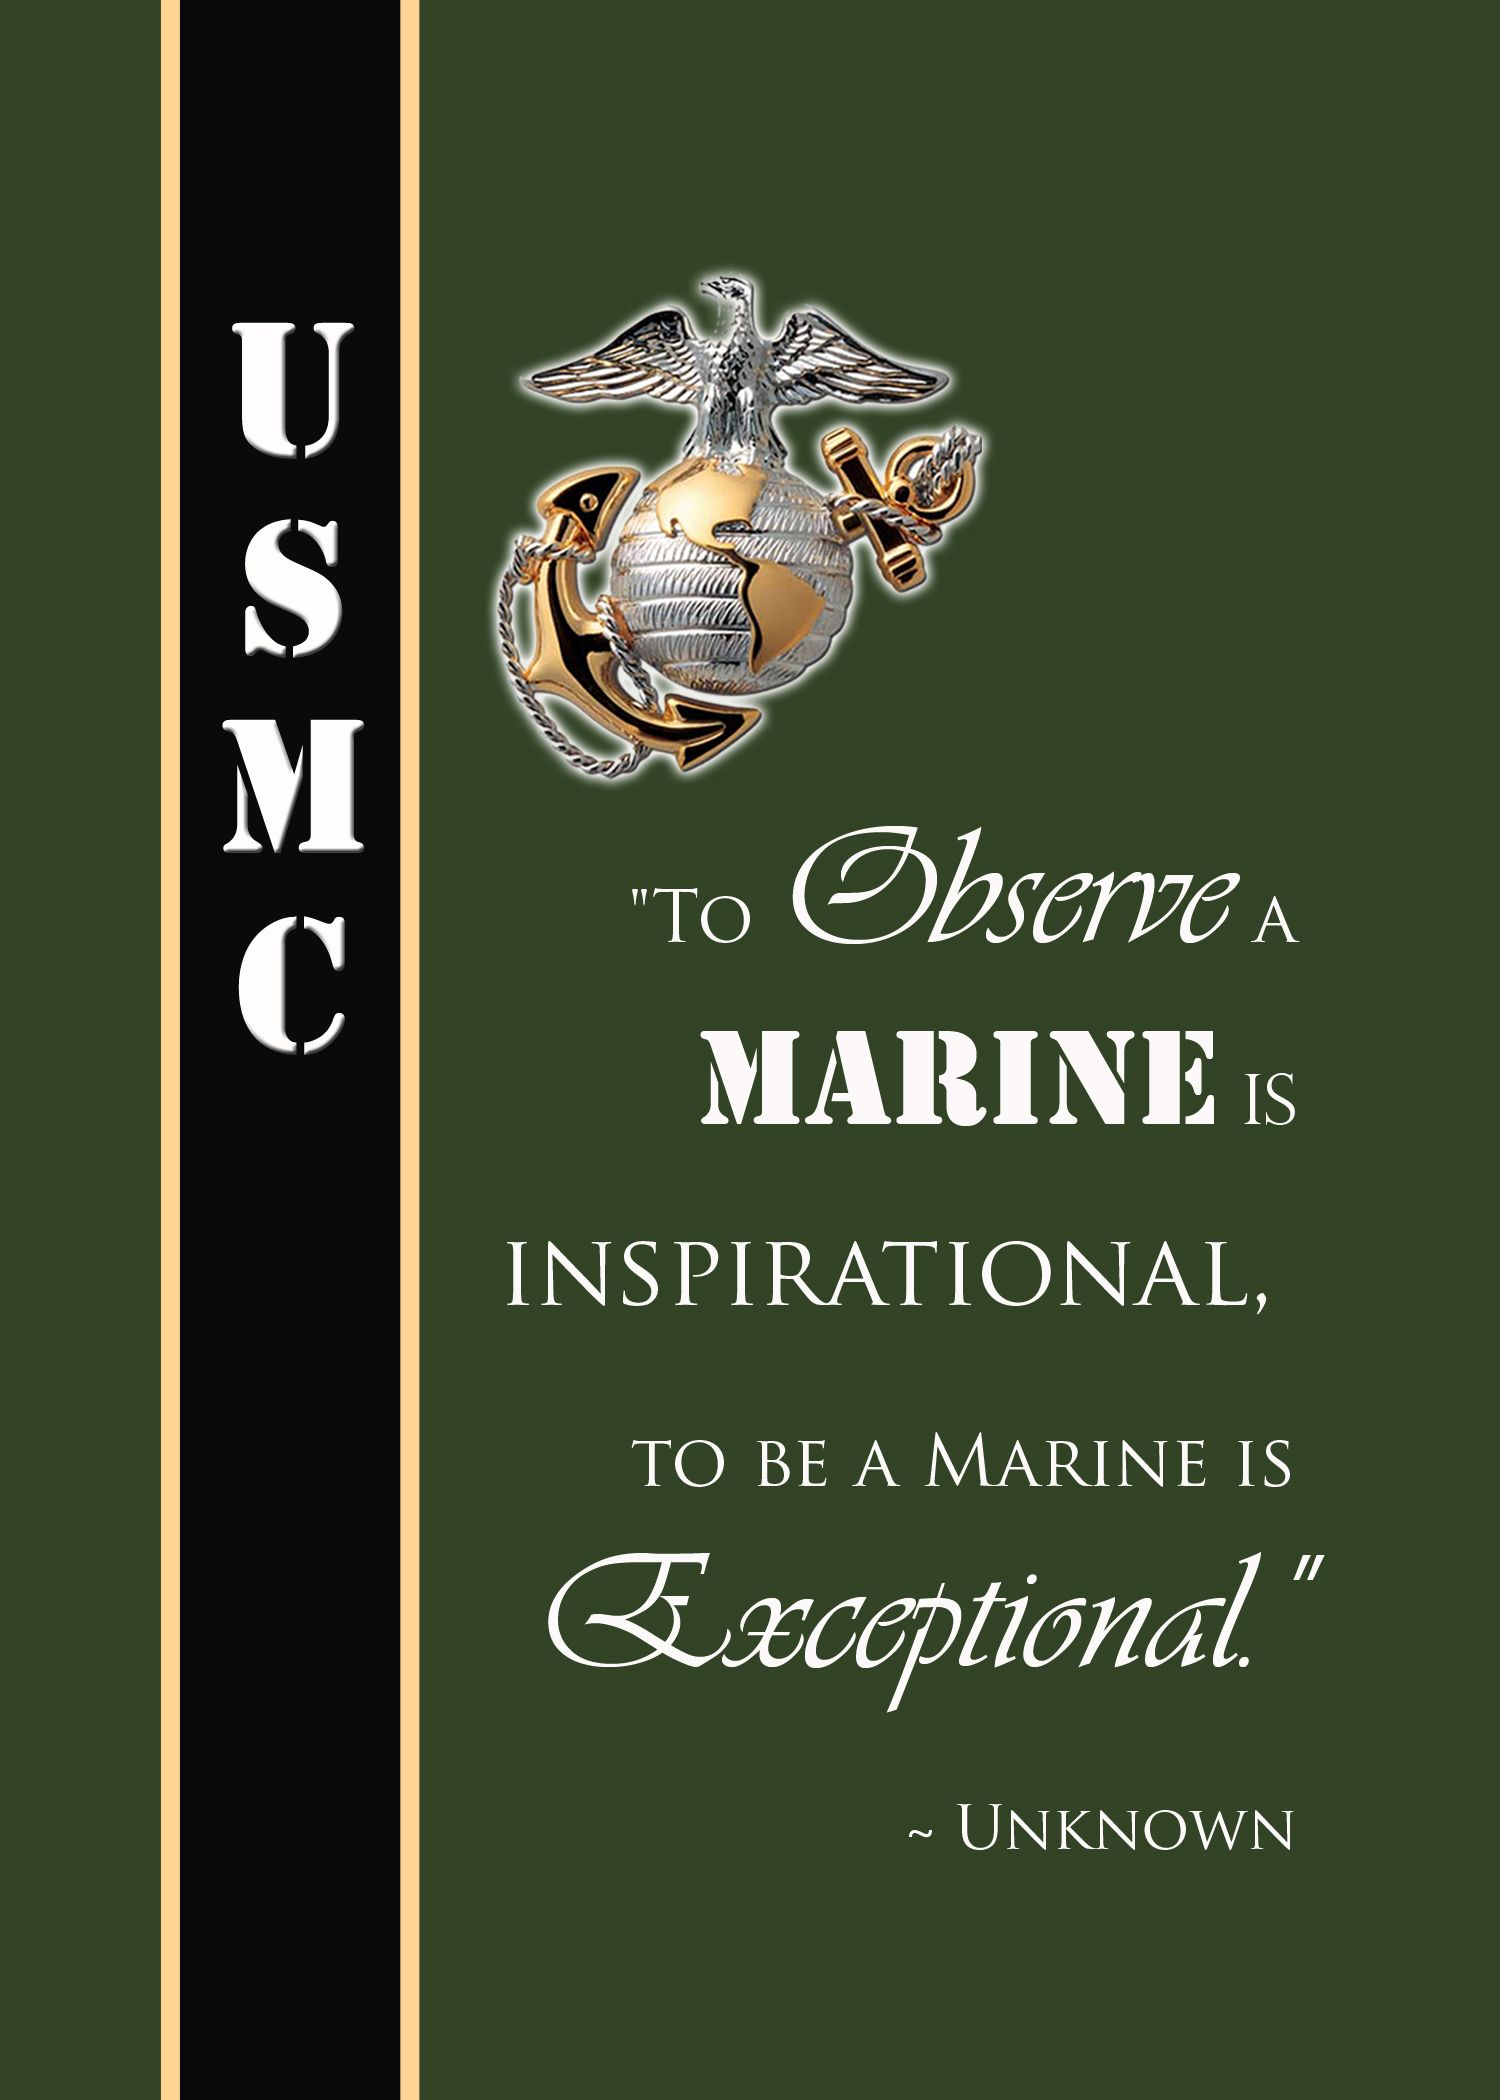 Marines Quotes Beauteous Famous Marine Quoteto Observe A Marine Is Inspirational To Be A . Inspiration